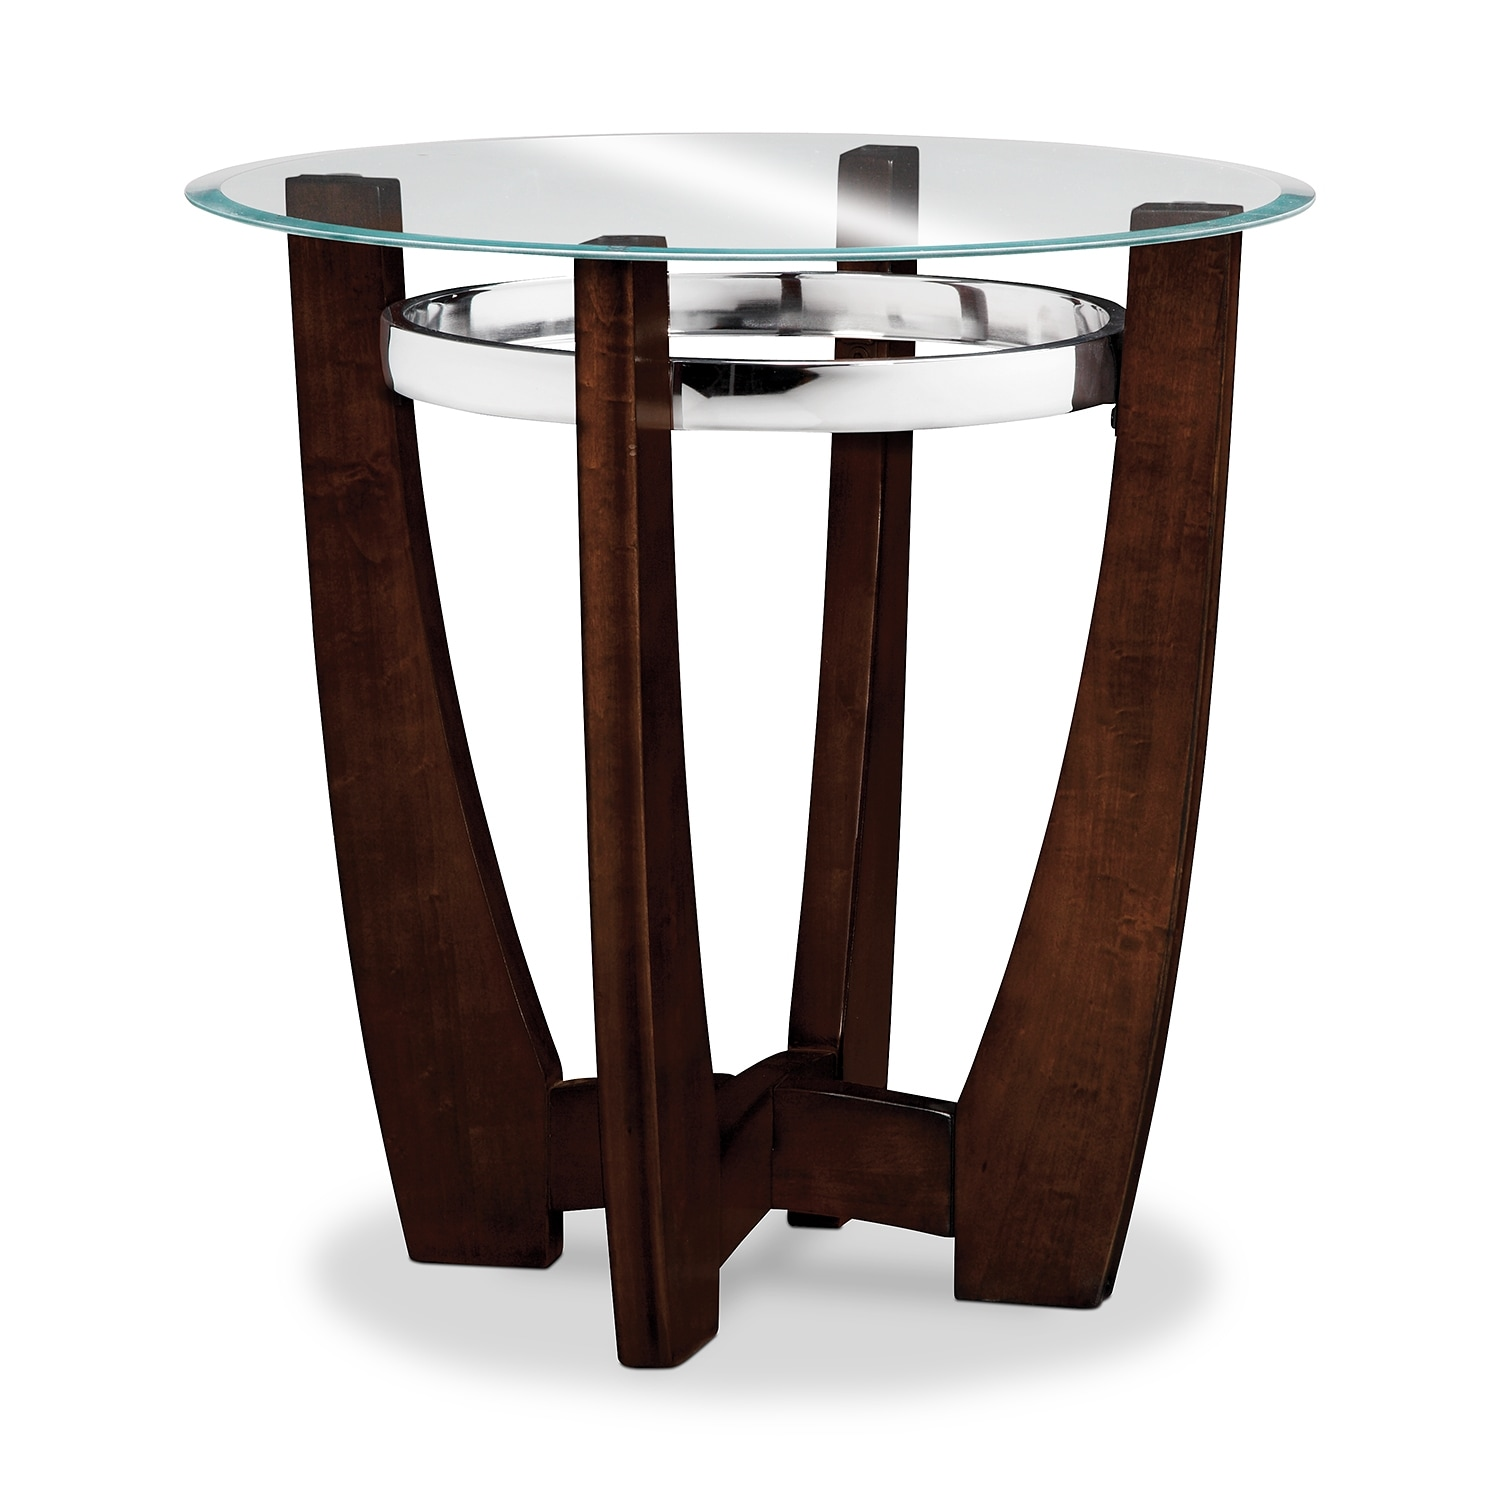 American Signature Coffee Table: Alcove Cocktail Table And 2 End Tables - Merlot